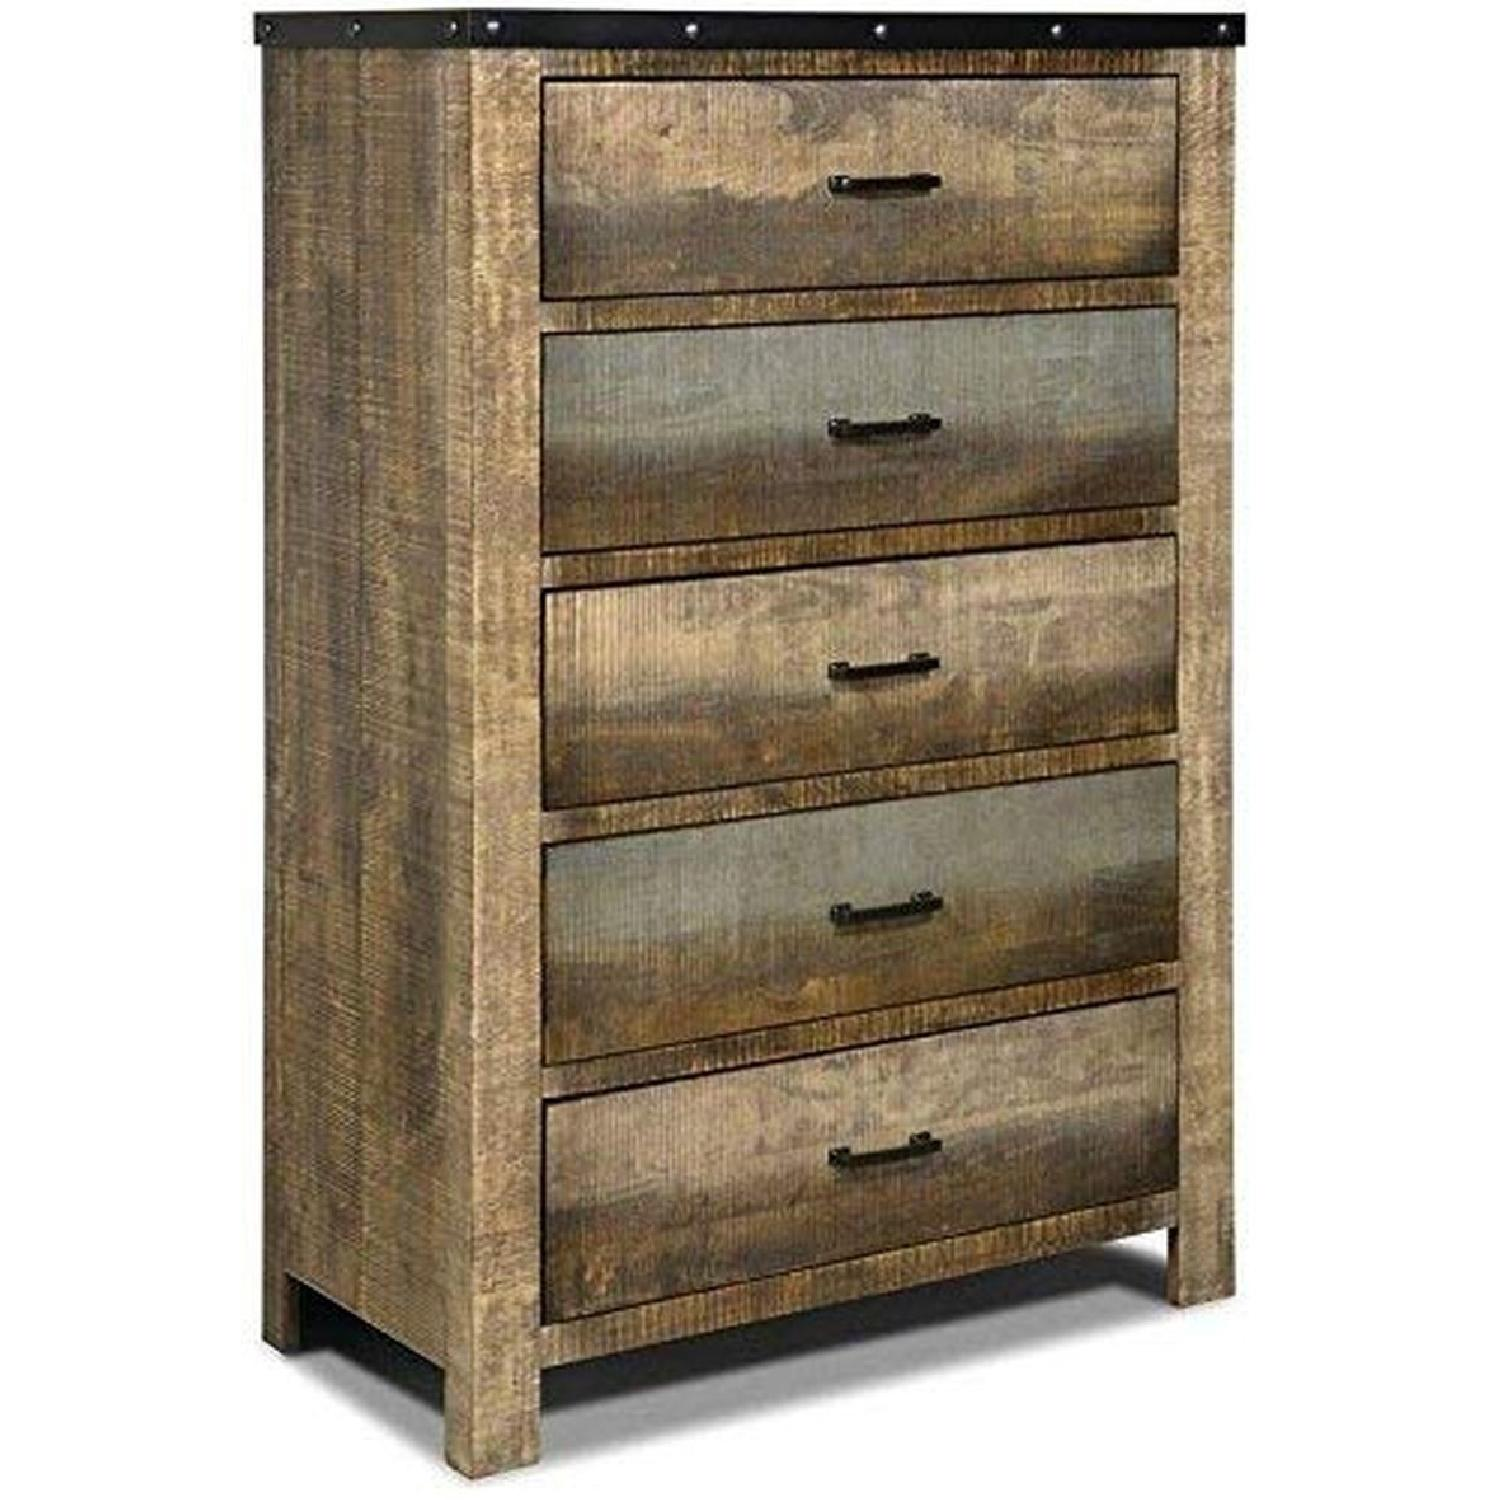 Rustic Style Chest in Solid Wood Multi-Tonal Finish - image-0